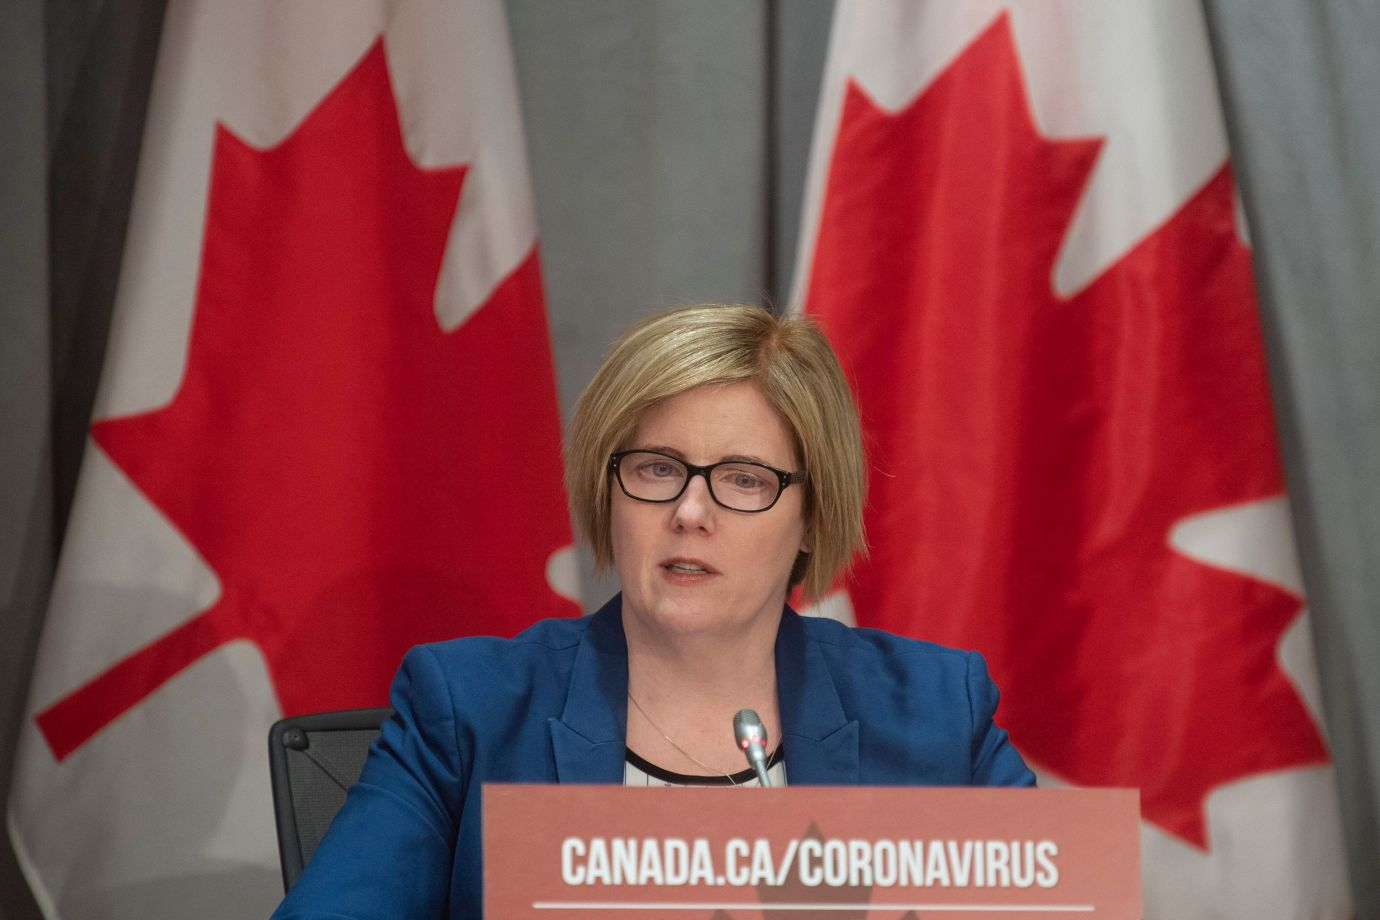 Employment, Workforce Development and Disability Inclusion Minister Carla Qualtrough at a news conference in Ottawa, Thurs. March 26, 2020. Qualtrough has suggested the new CERB could be the new normal for how Canada delivers income support.